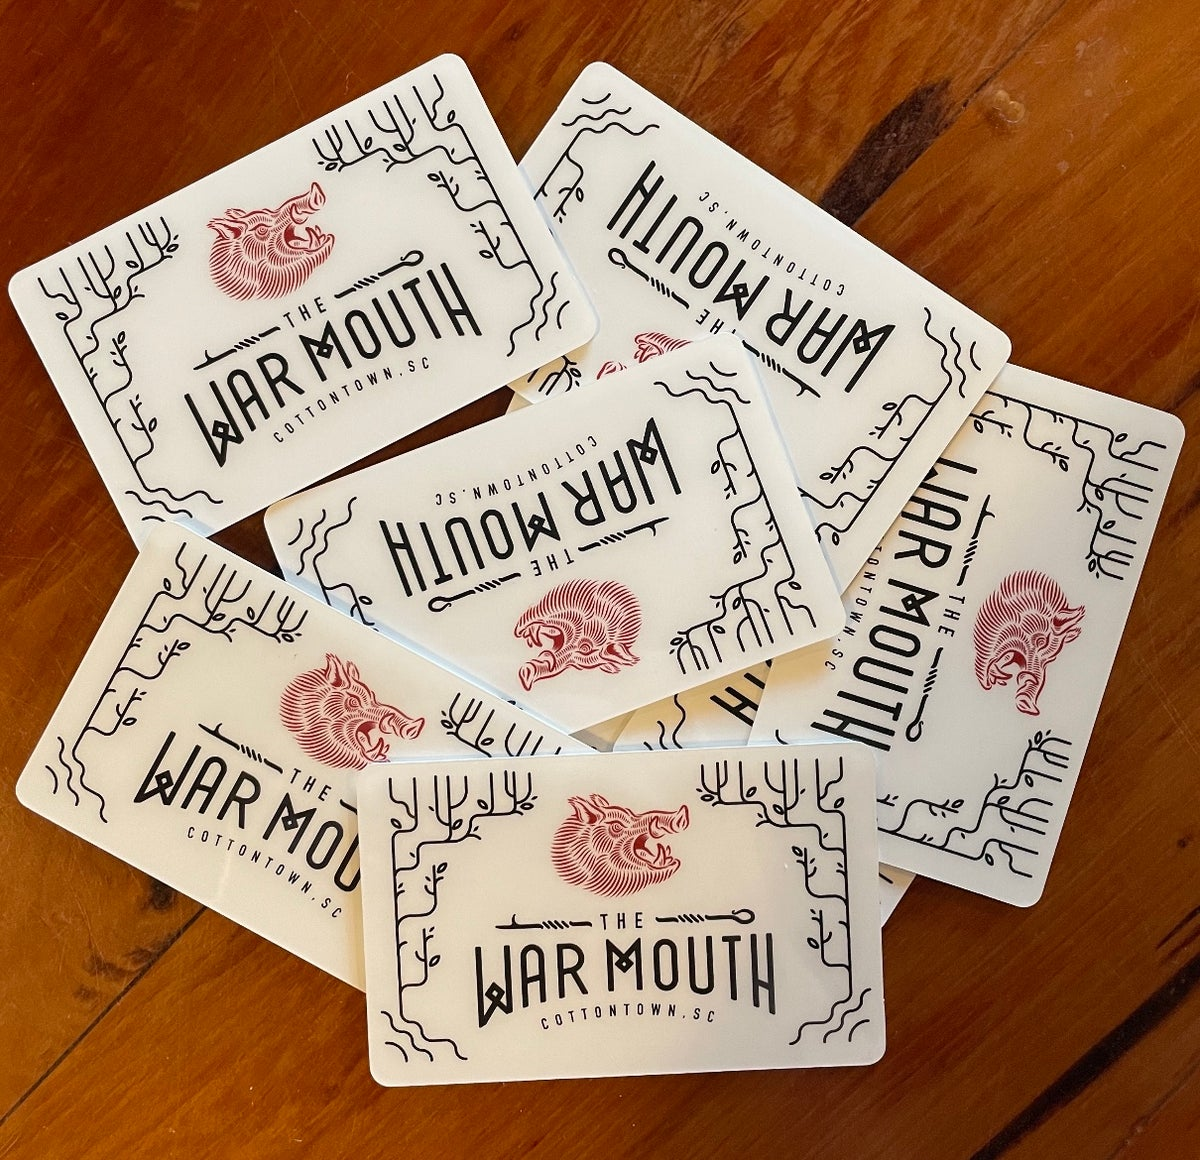 Image of War Mouth gift card